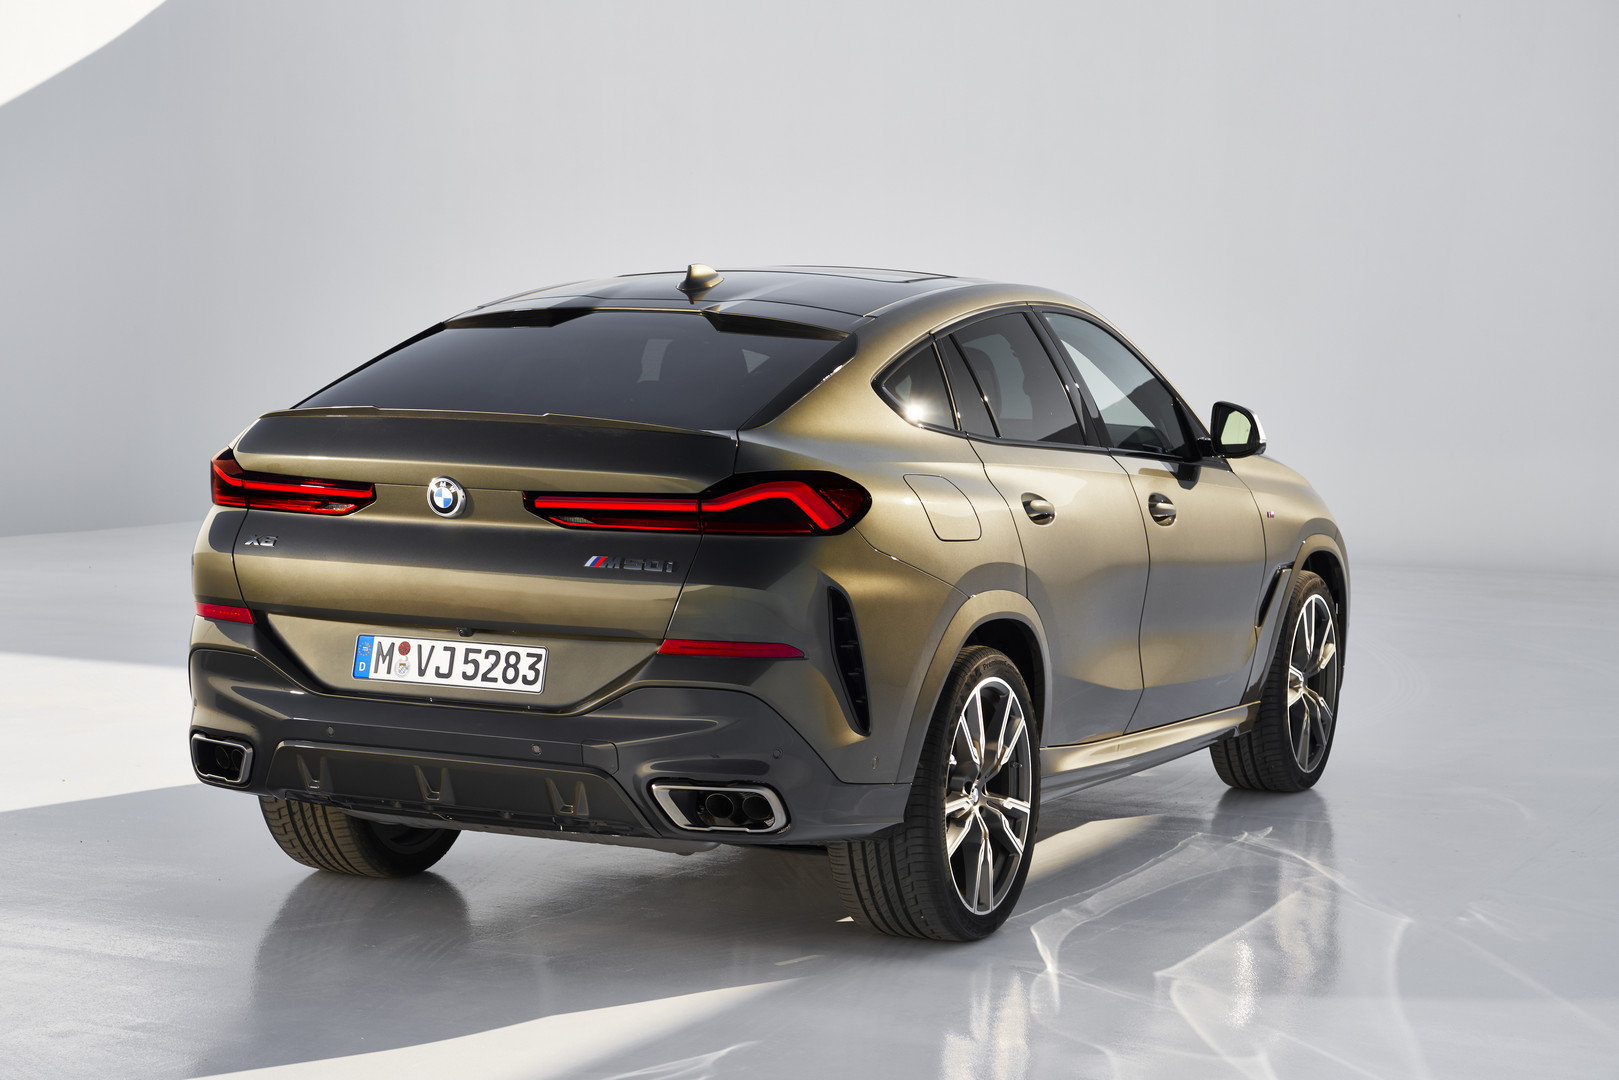 2020 BMW X6 M50i Rear Lights